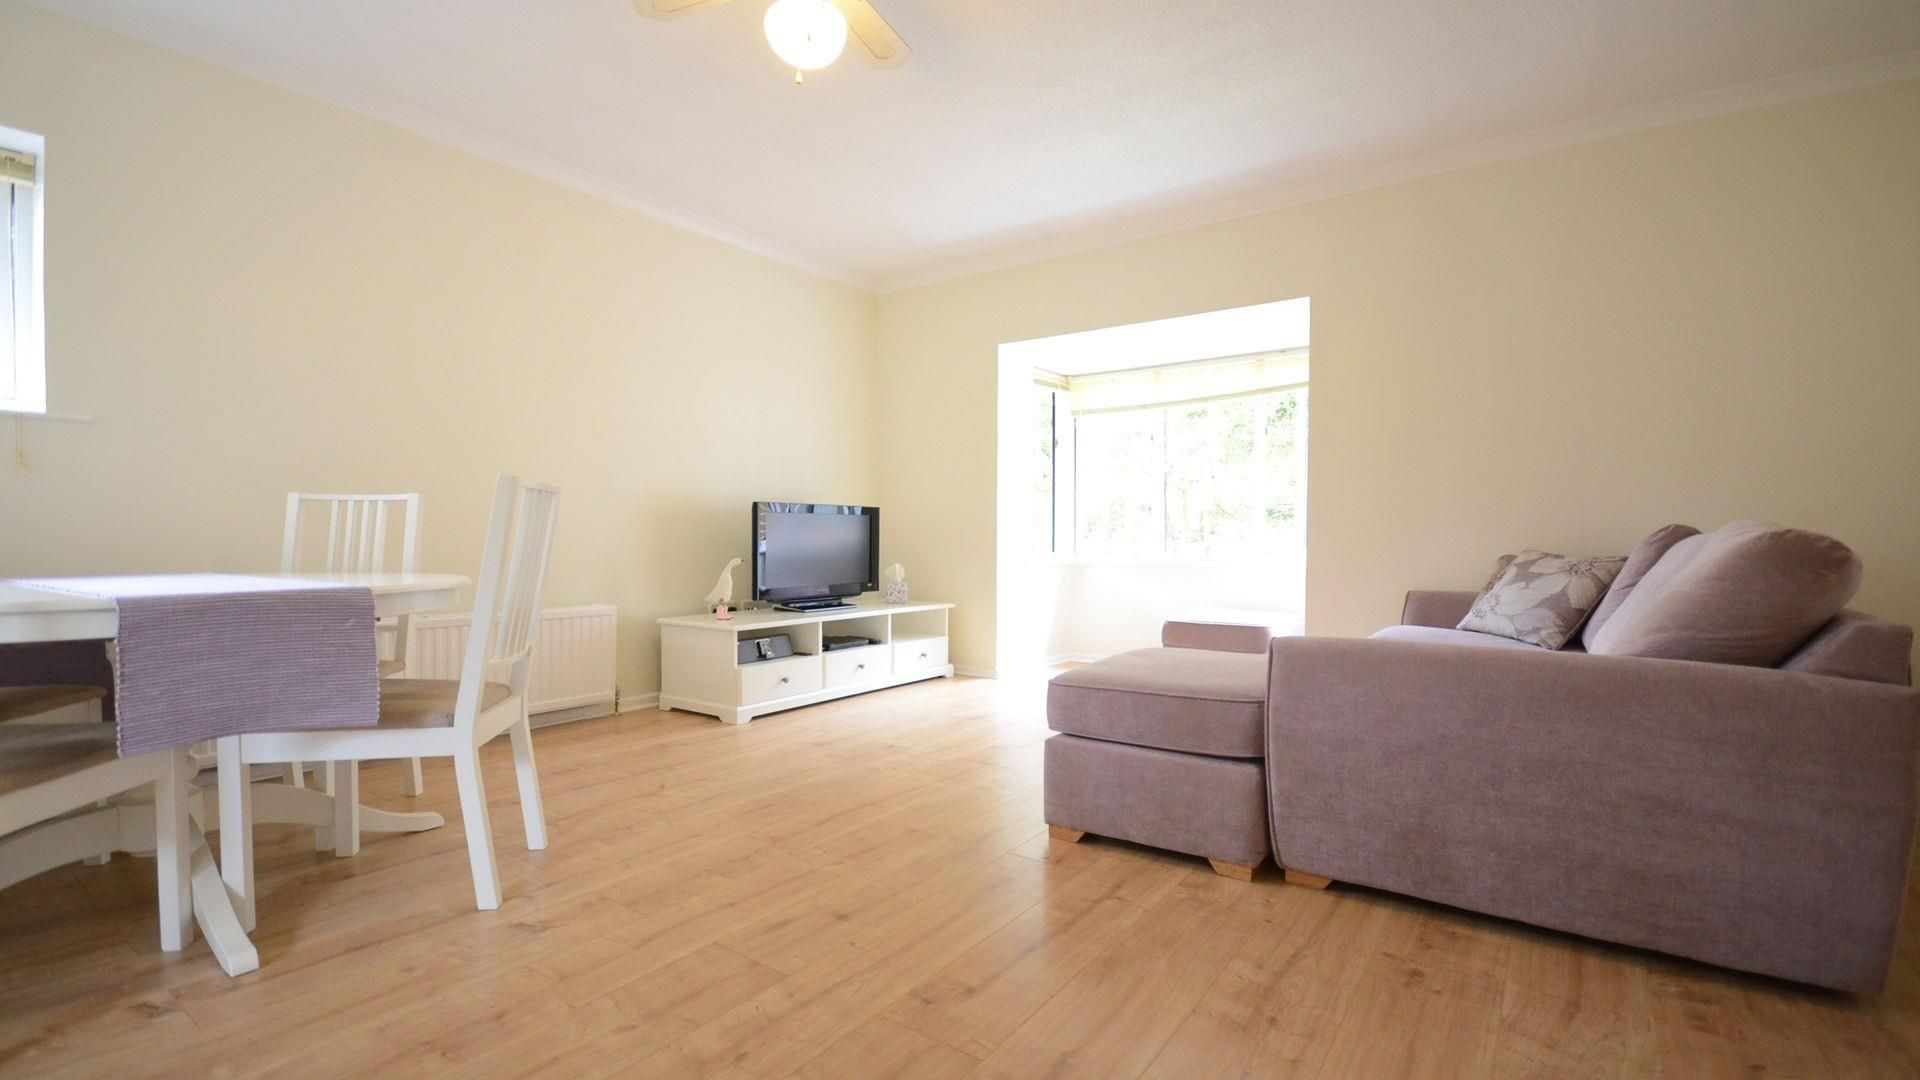 1 bed flat to rent, RG12